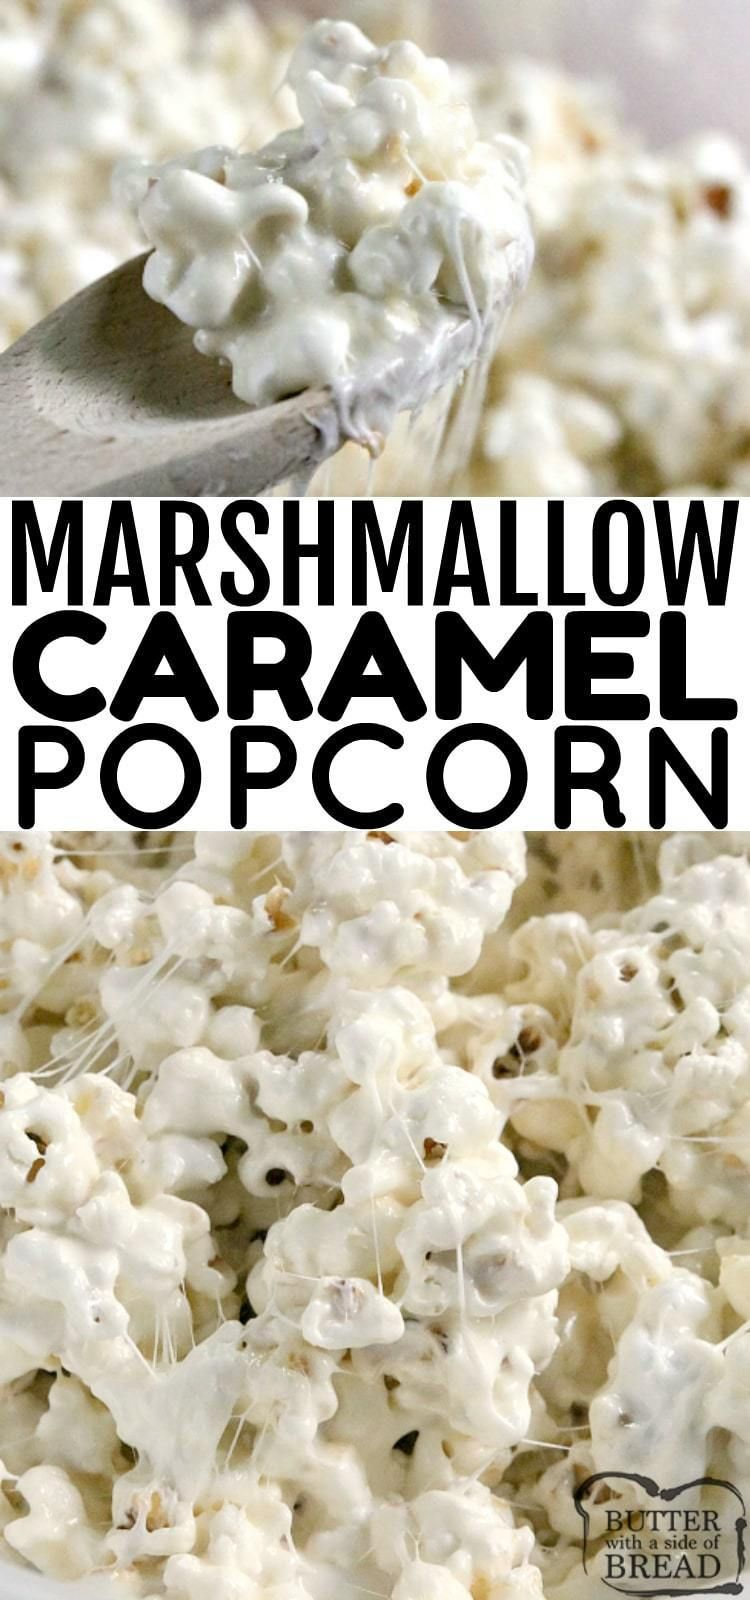 MARSHMALLOW CARAMEL POPCORN - Butter with a Side of Bread